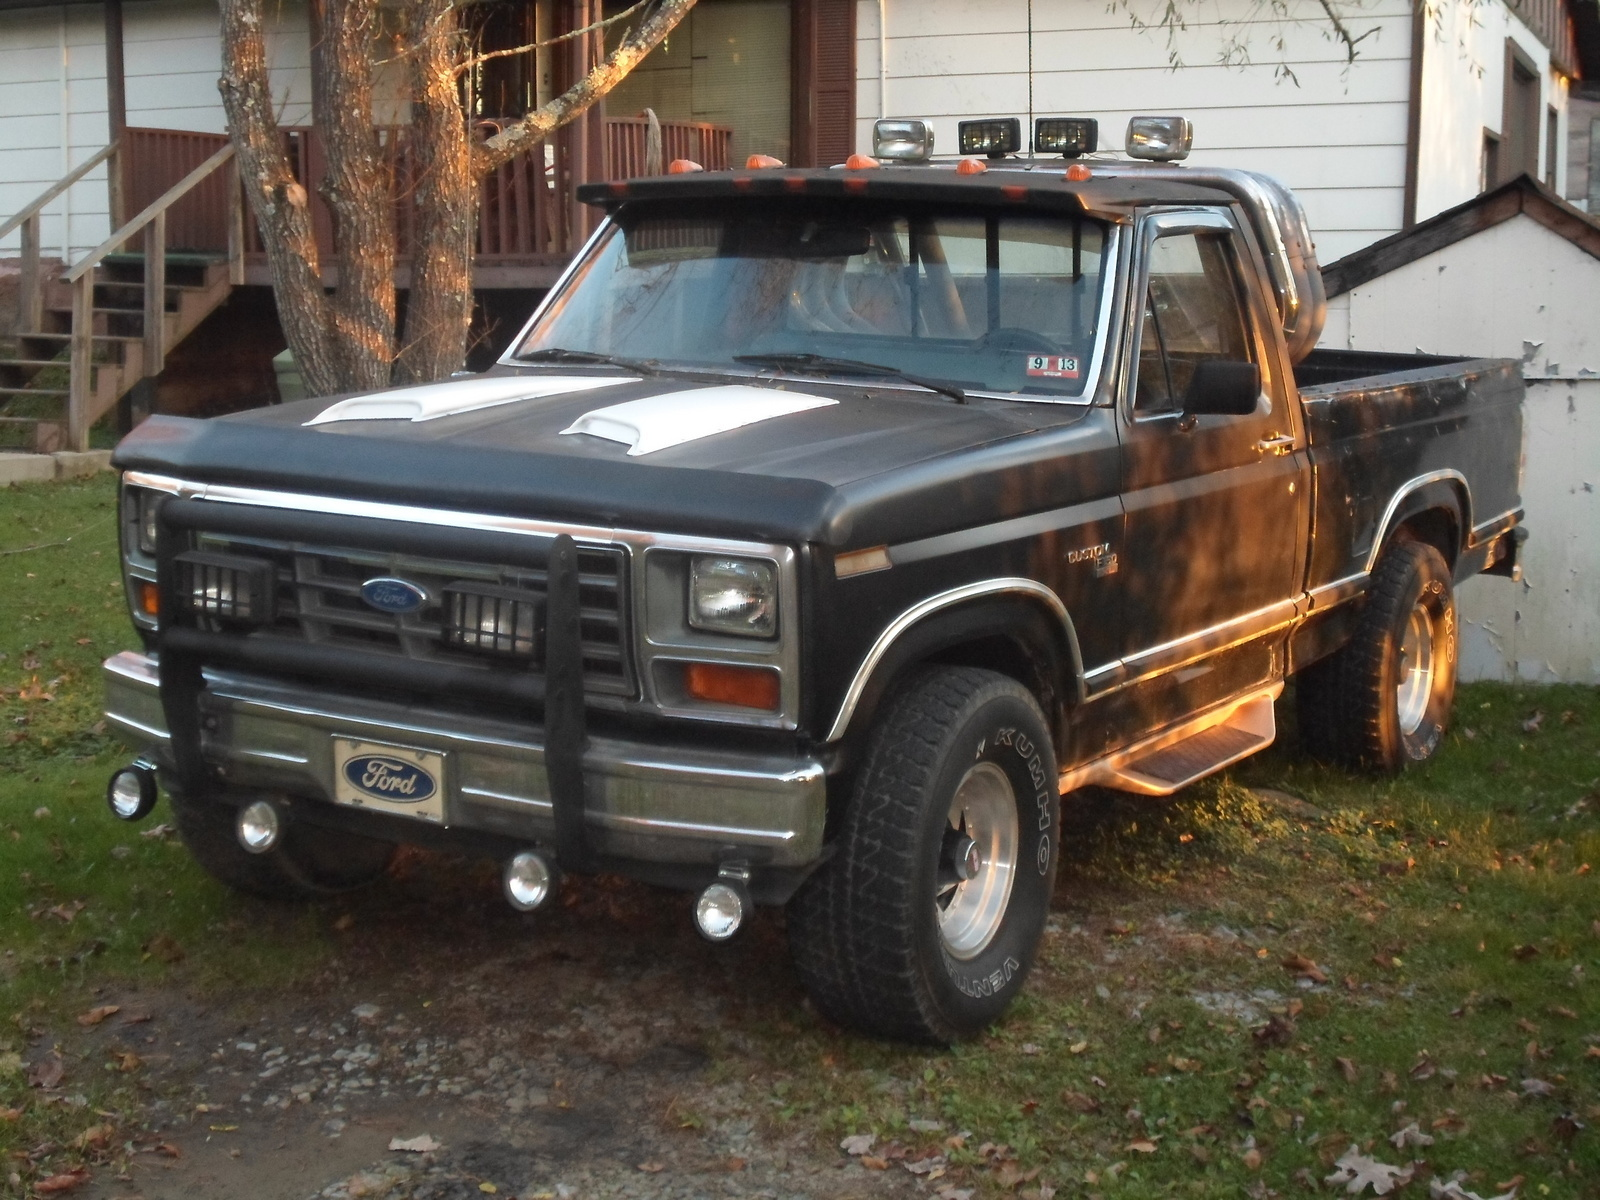 1981 Ford F-150 - Overview - CarGurus